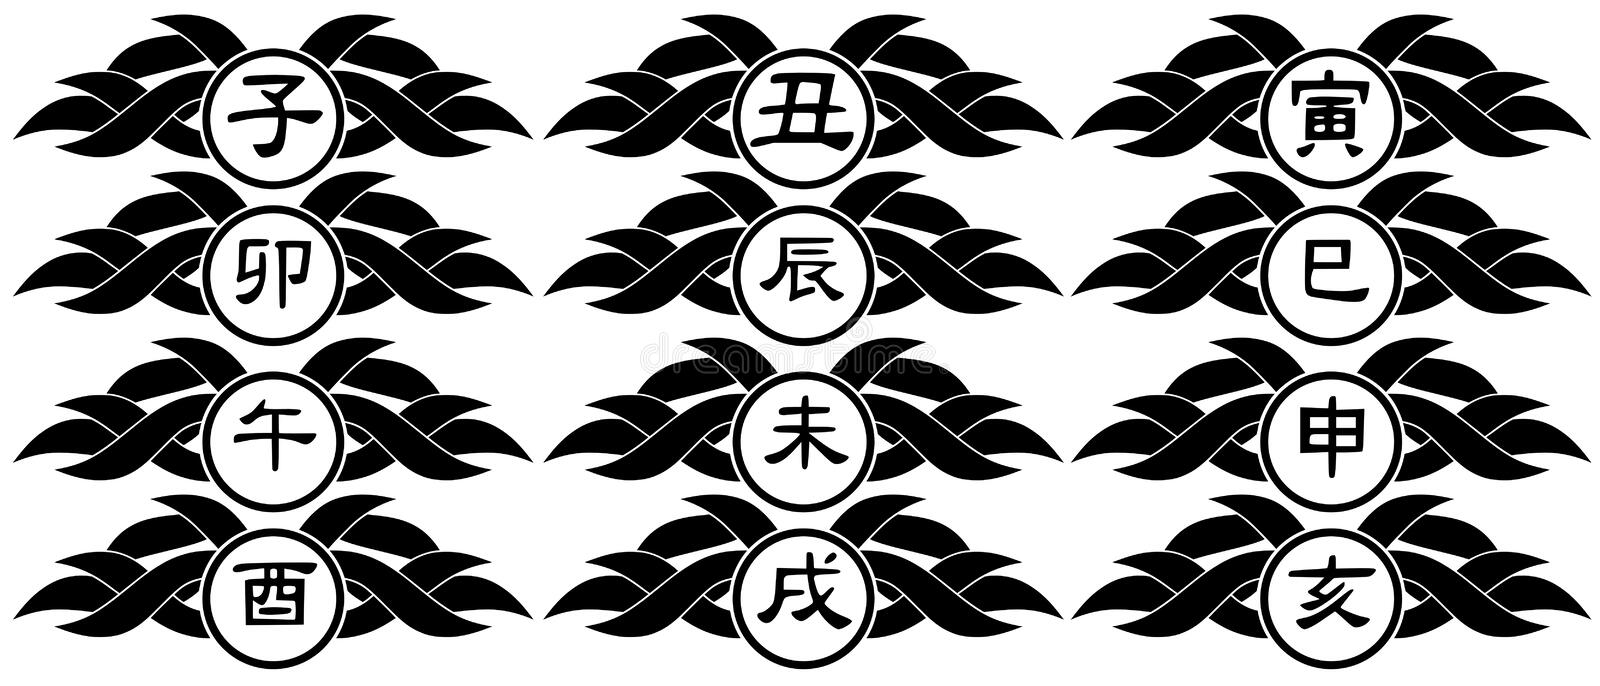 Ideograms of Chinese Zodiac signs tattoo isolated royalty free illustration